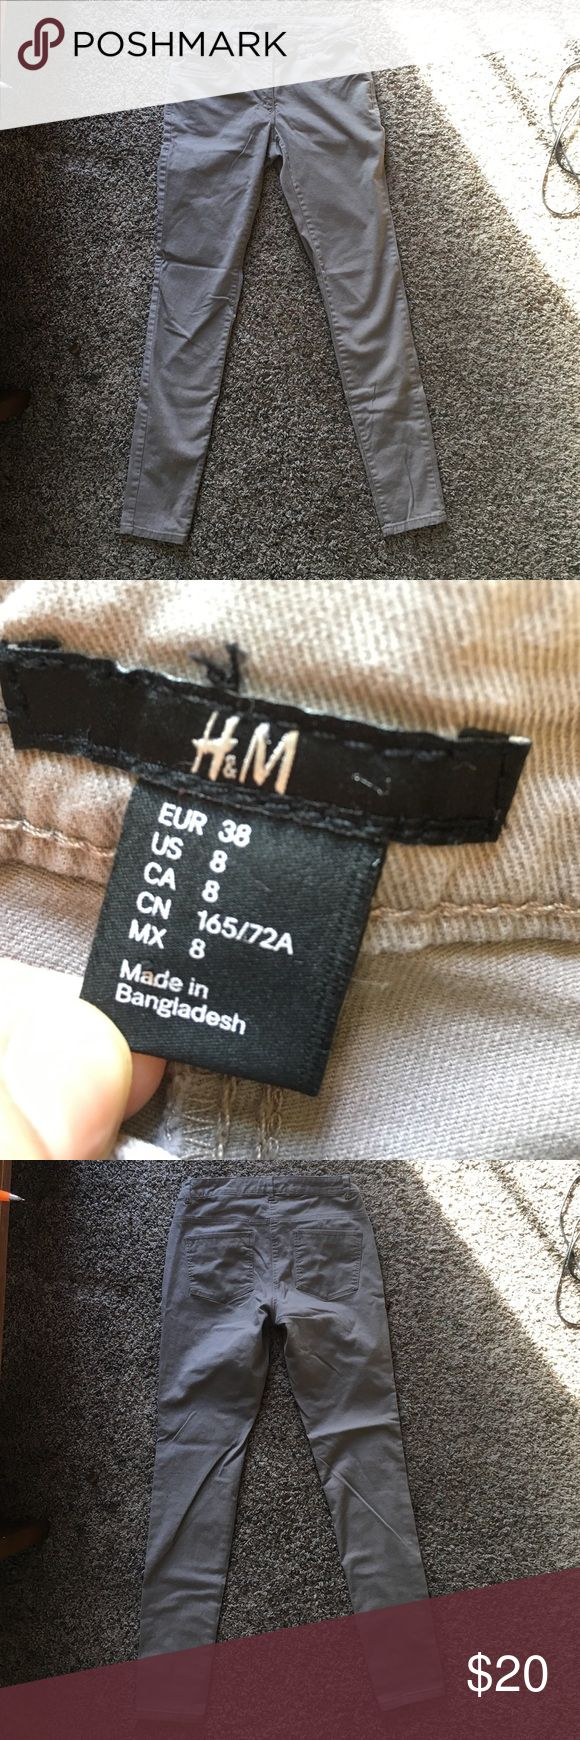 Khaki skinny jeans Comfy, slightly stretchy khaki colored skinnies frlm H&M. Only worn once. Great condition H&M Pants Skinny